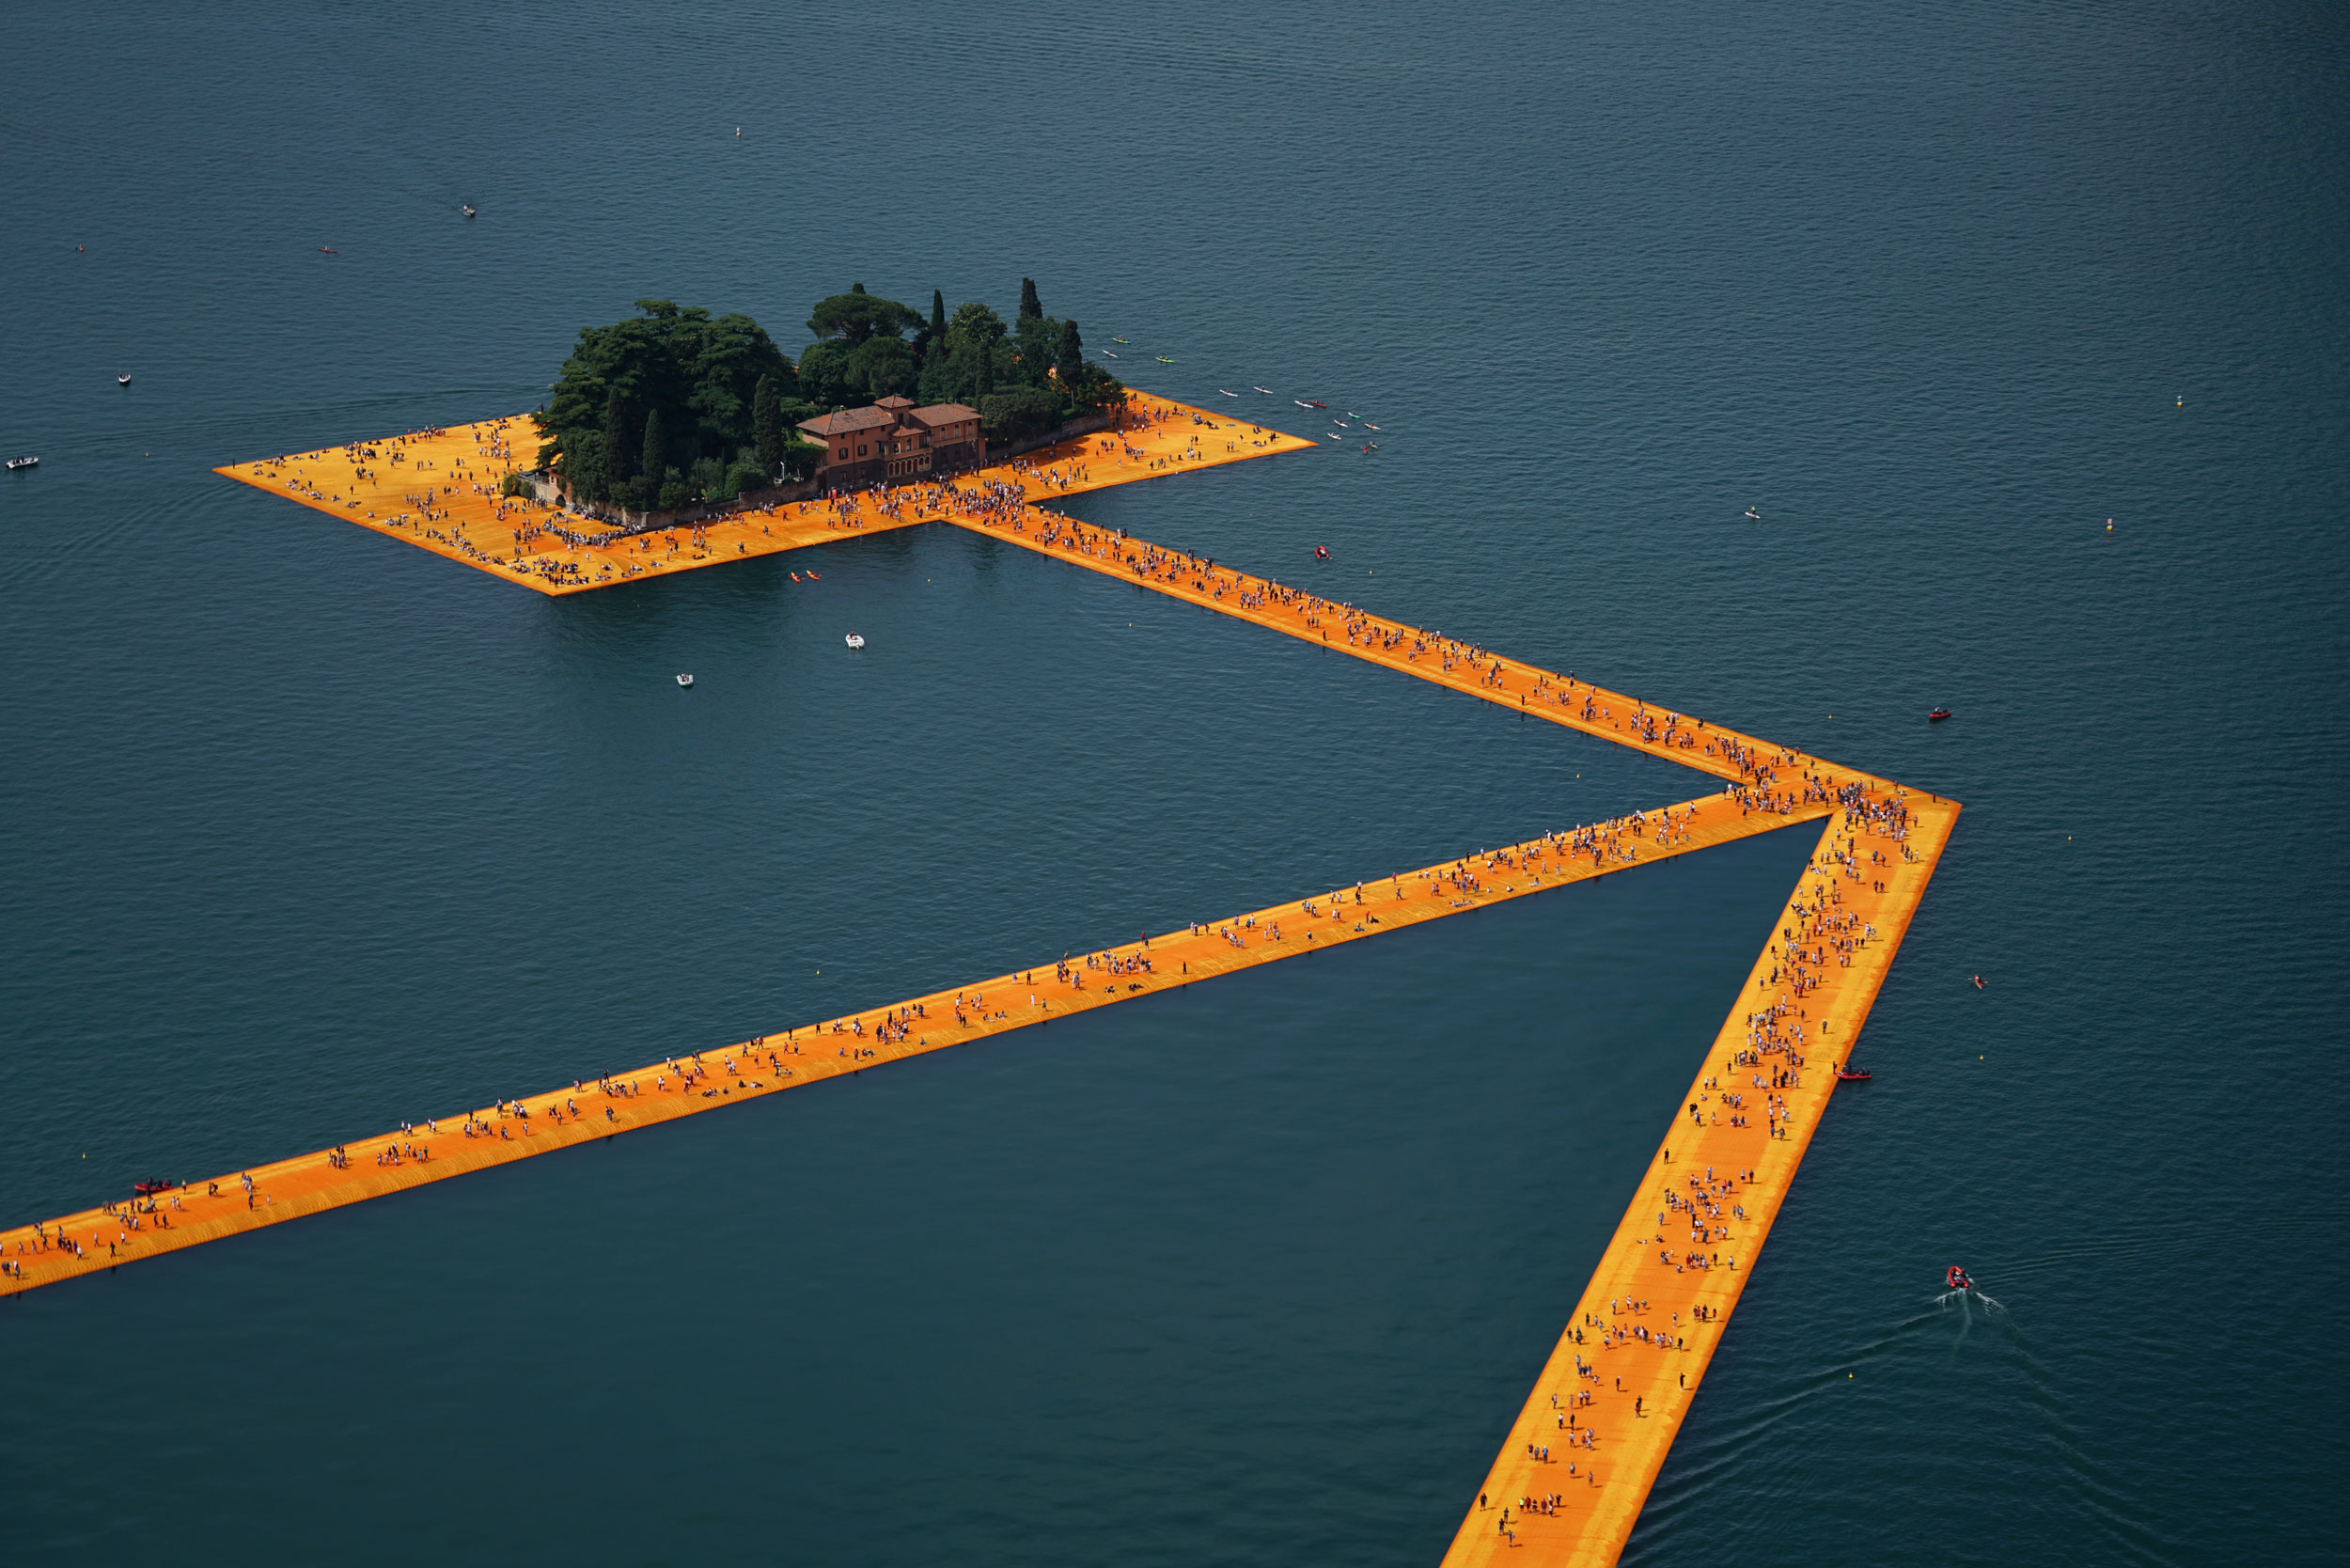 Christo and Jeanne-Claude The Floating Piers, Lake Iseo, Italy, 2014-16 Photo: Wolfgang Volz © 2016 Christo